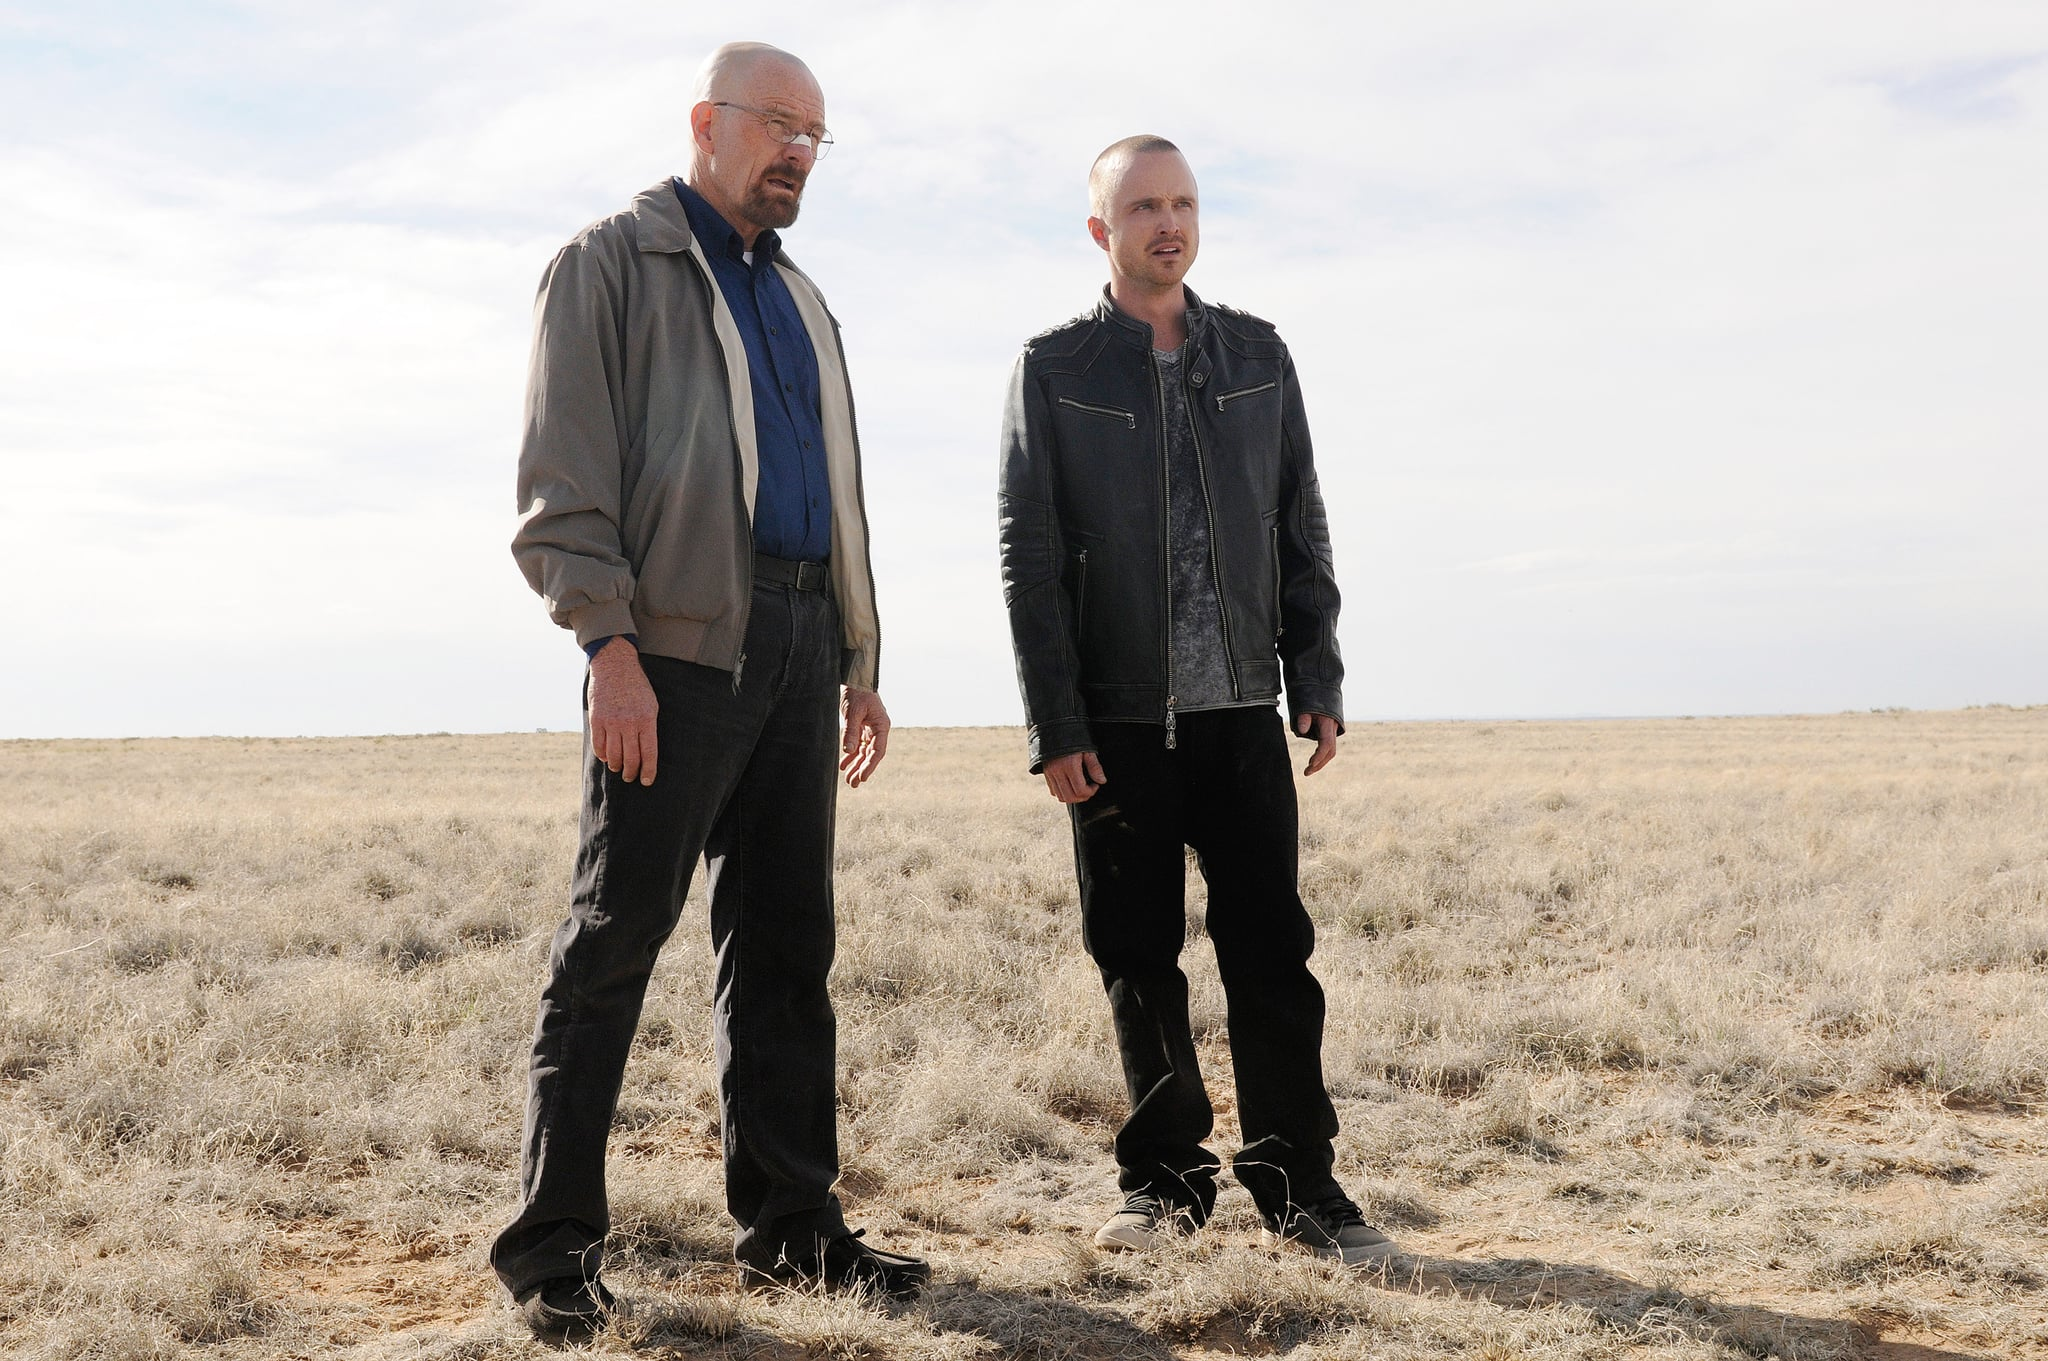 BREAKING BAD, (from left): Bryan Cranston, Aaron Paul, 'Live Free or Die', (Season 5, ep. 501, airing July 15, 2012), 2008-2012. Photo: Ursula Coyote /  AMC / Courtesy Everett Collection